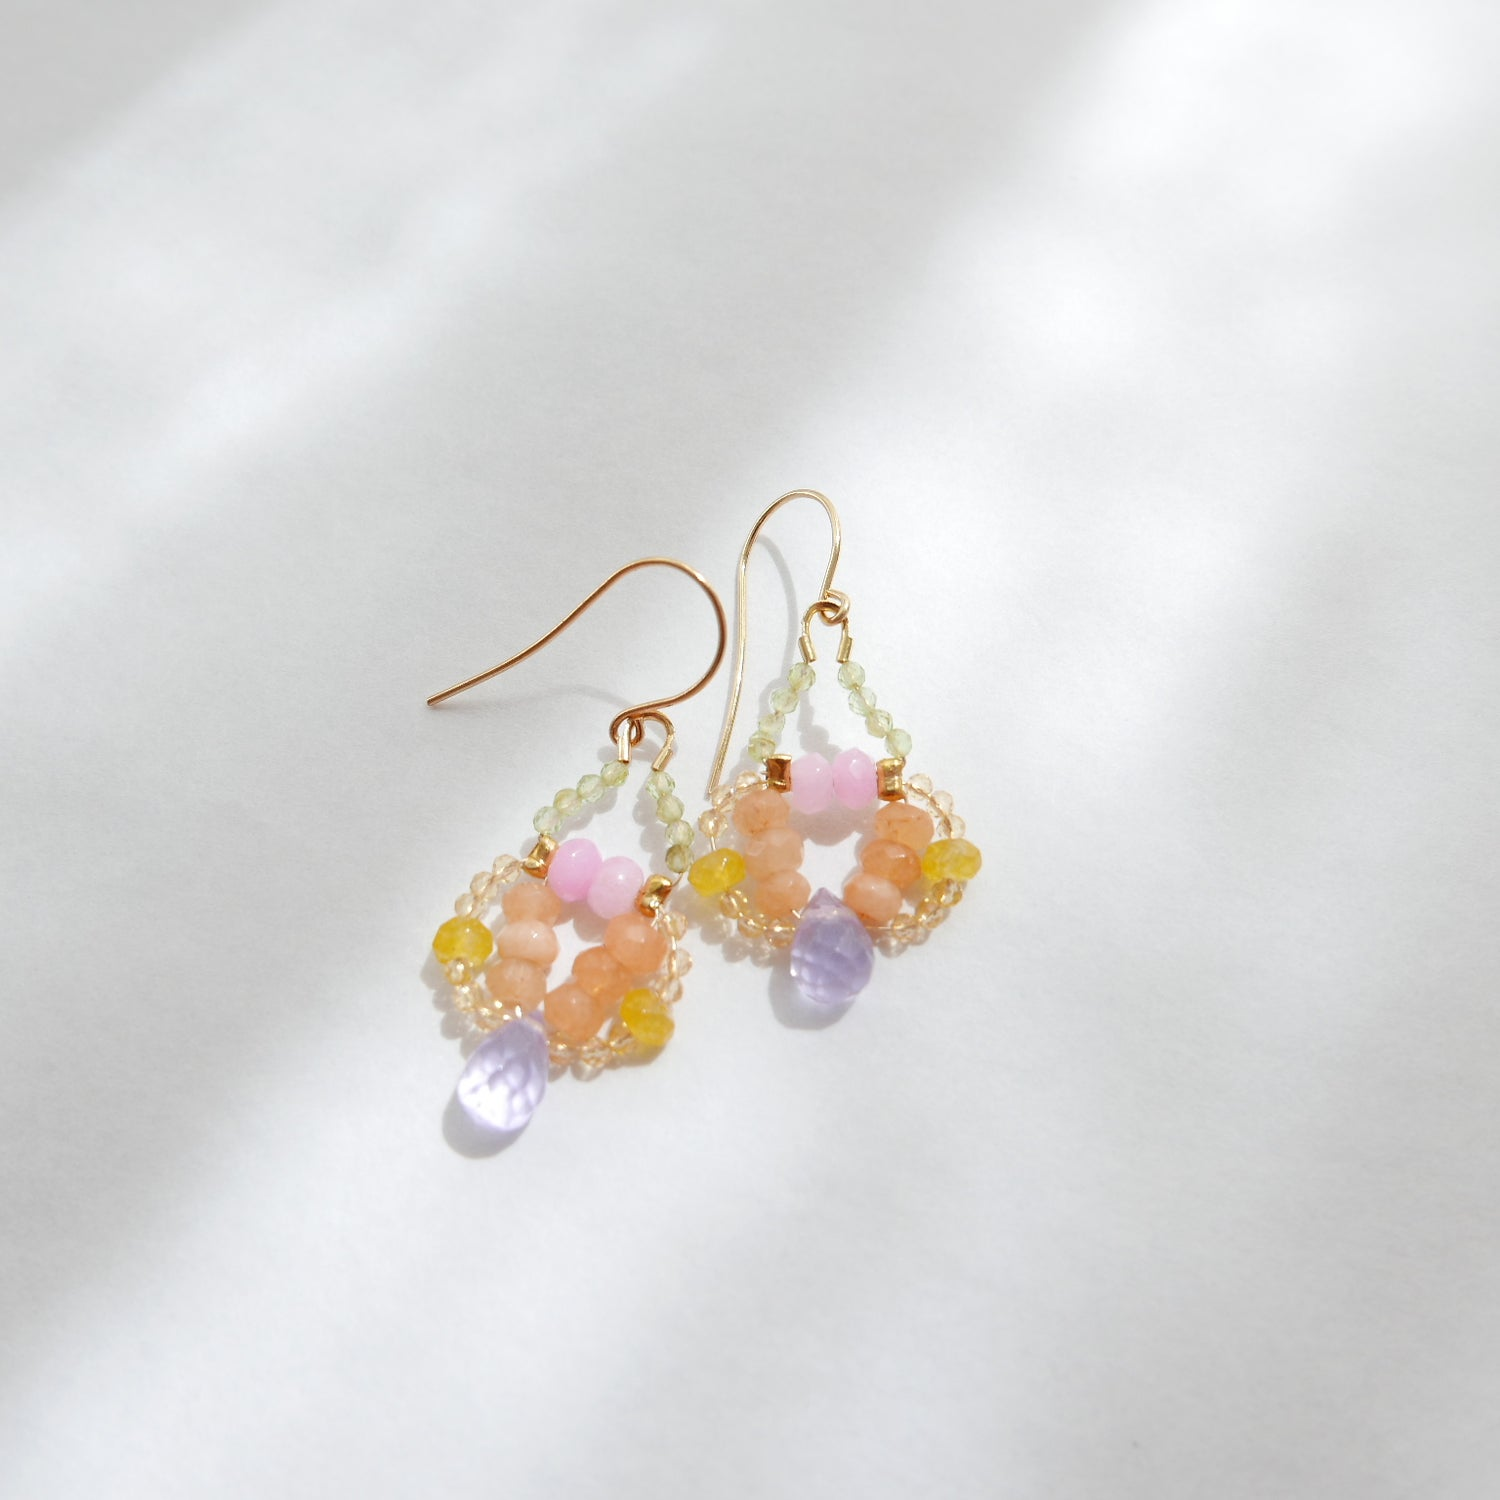 Image of Nova Earrings - Buttercup